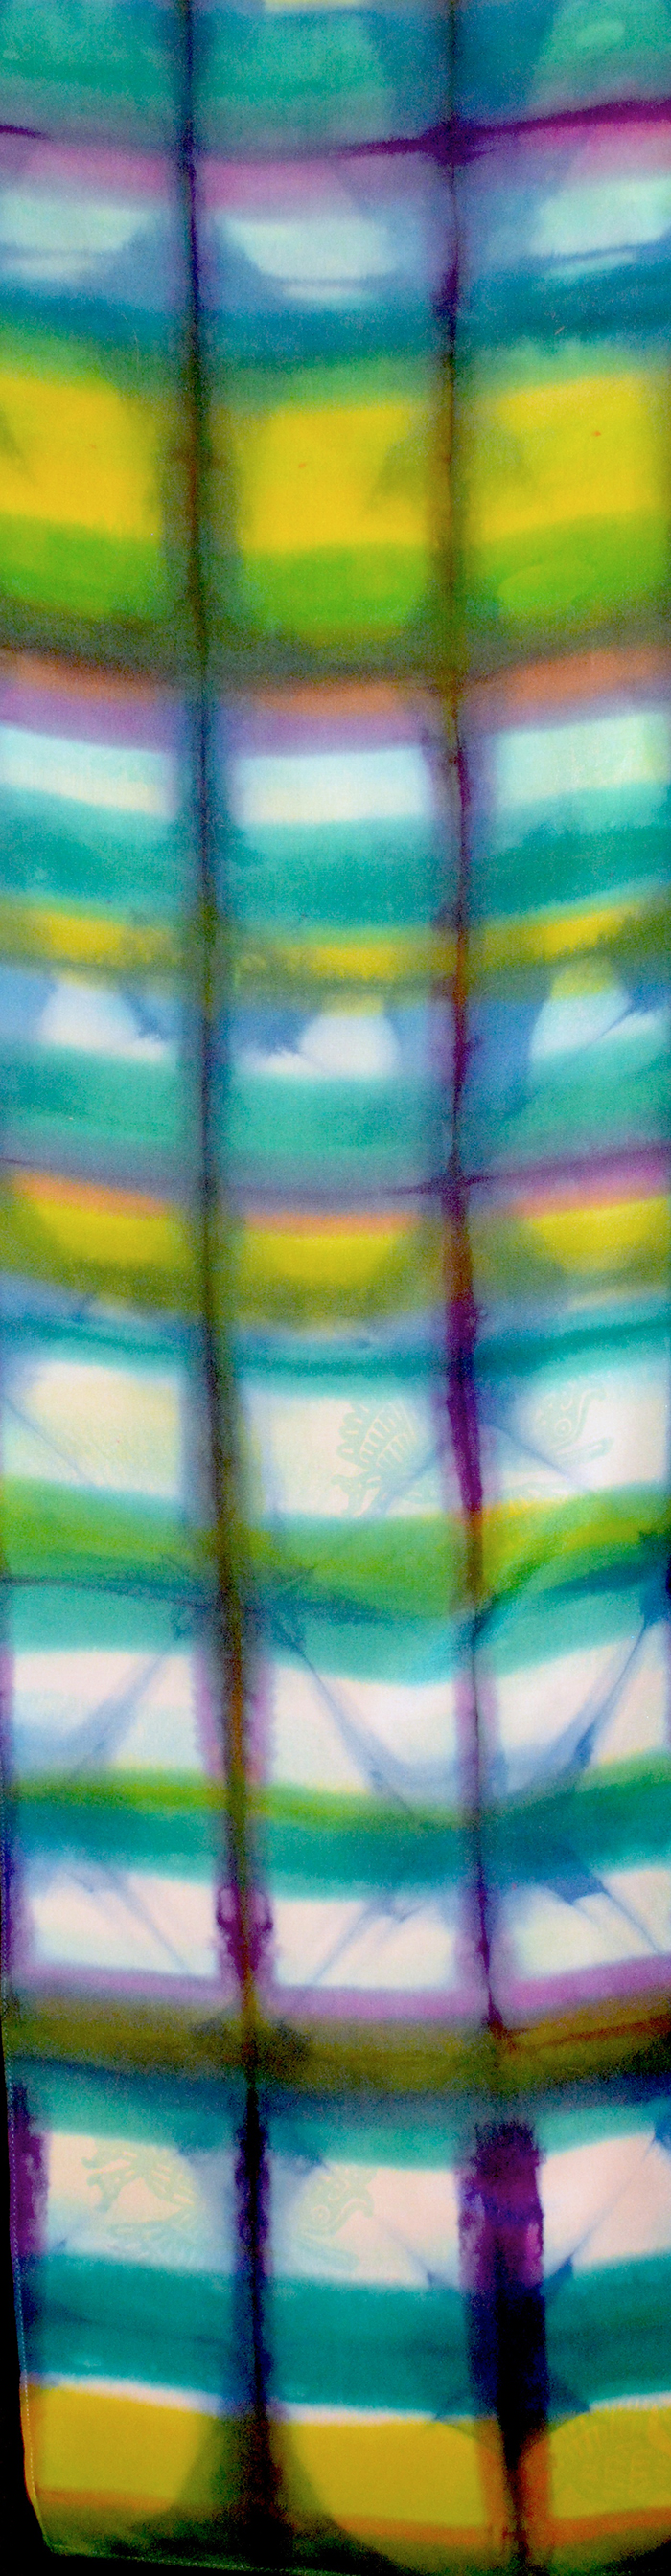 12x60, 2012, fold and clamp shibori, fiber-reactive dyes on crepe de chine